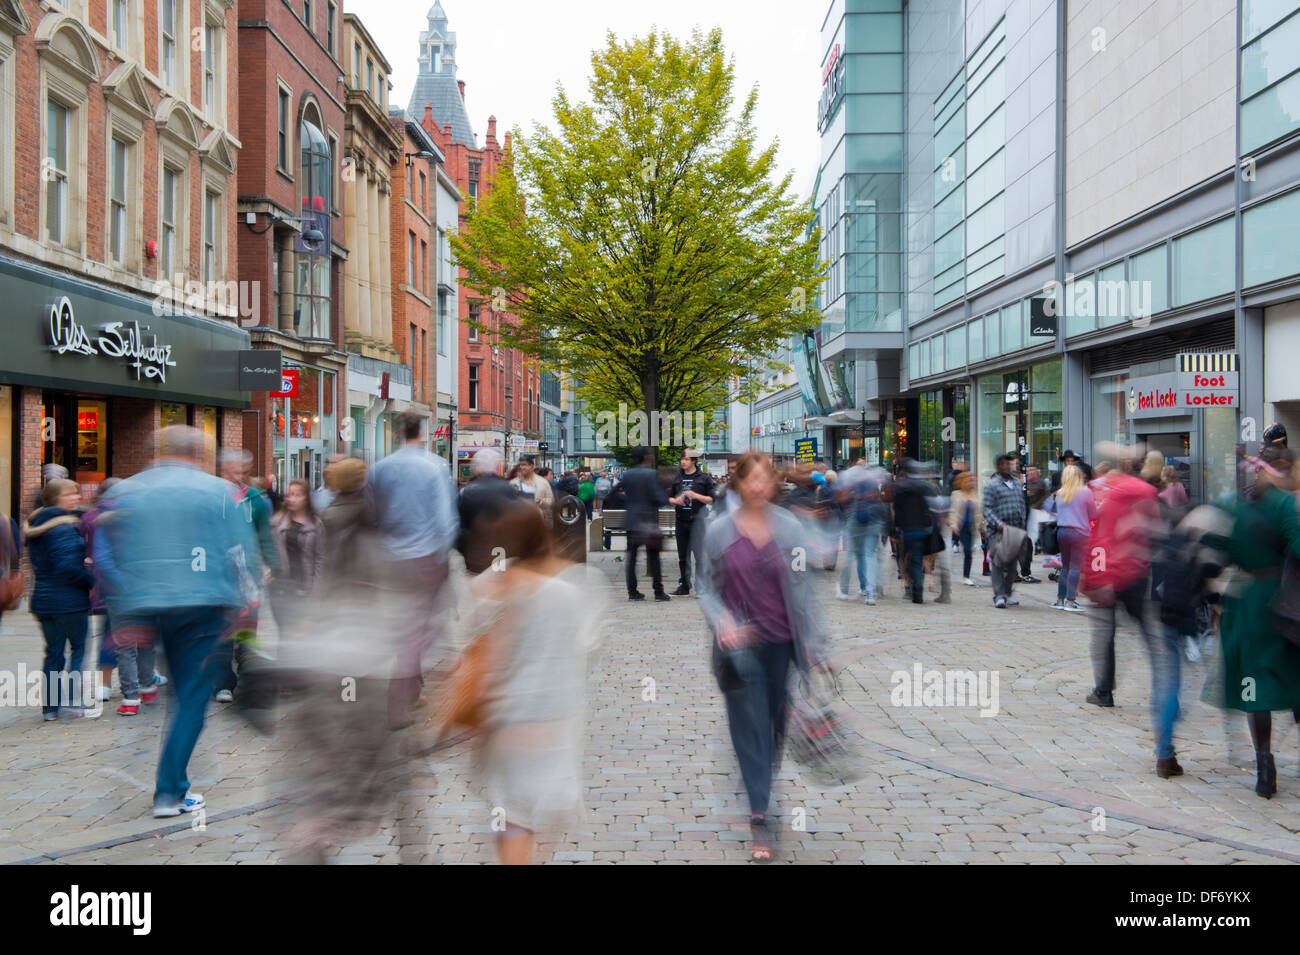 A general view of a busy Market Street, located in the central shopping area of Manchester. - Stock Image